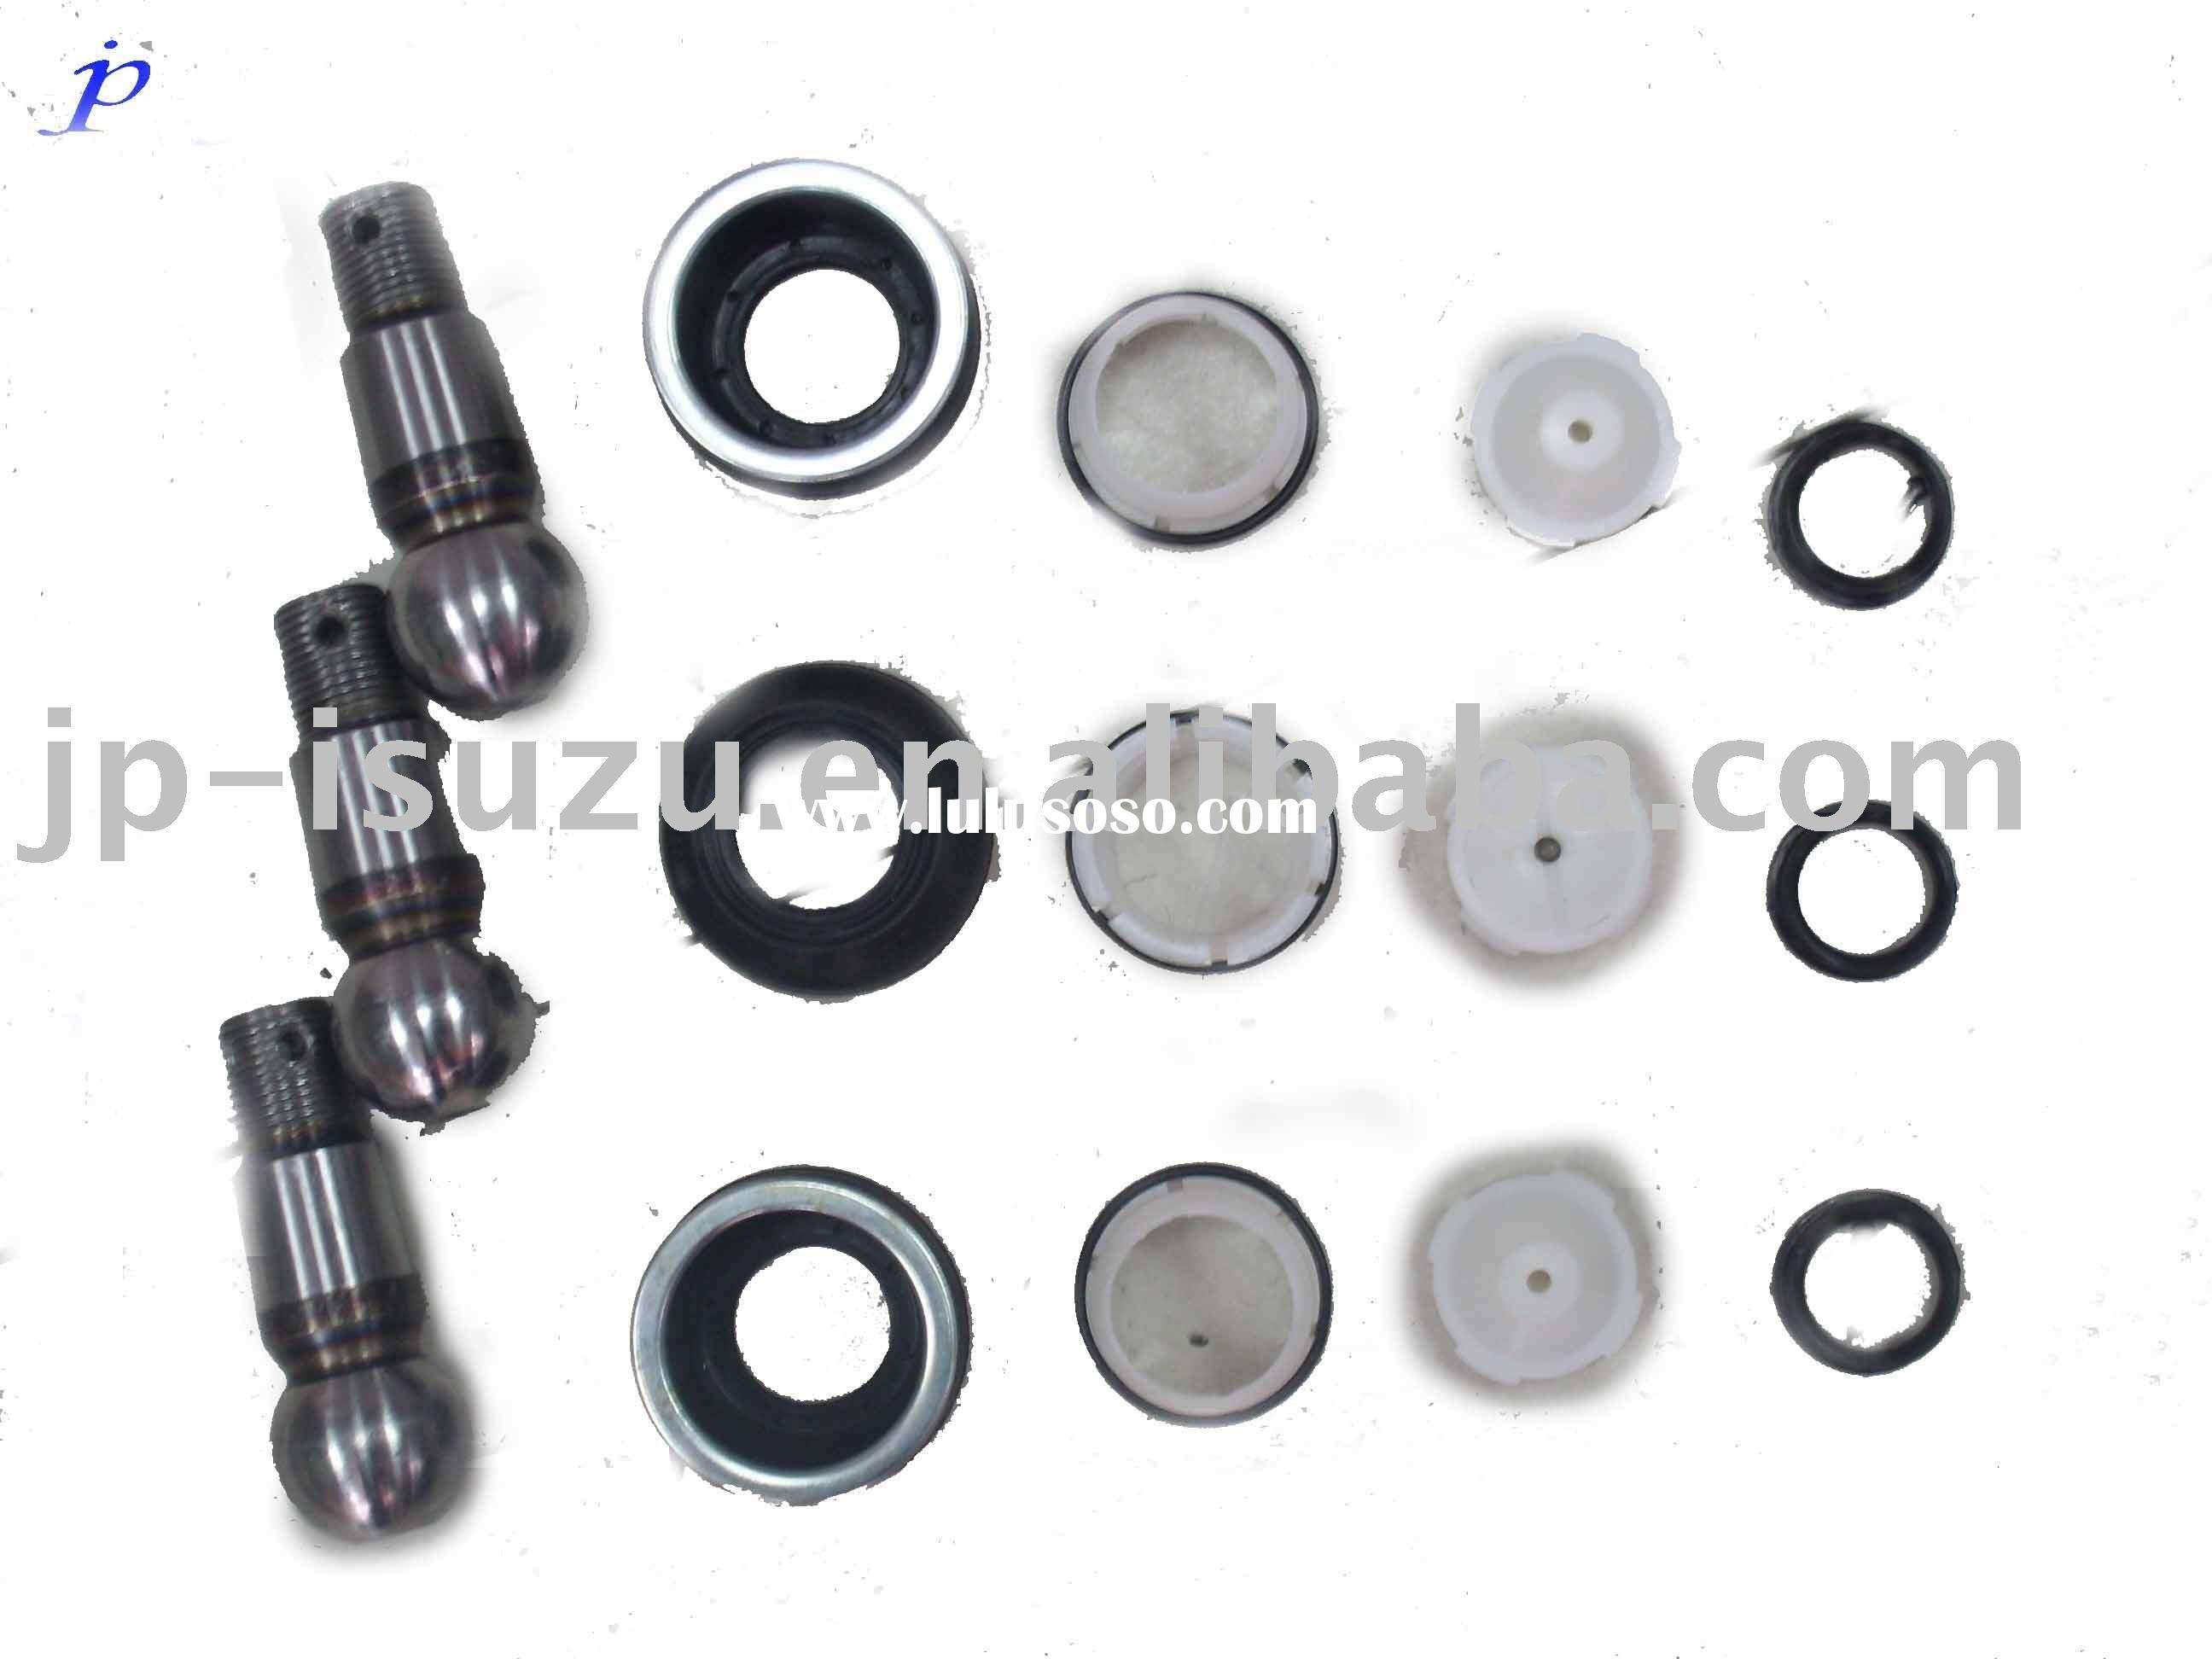 drag link/ steering parts / control arm / ball joint / repair kits /SERVICE KIT /